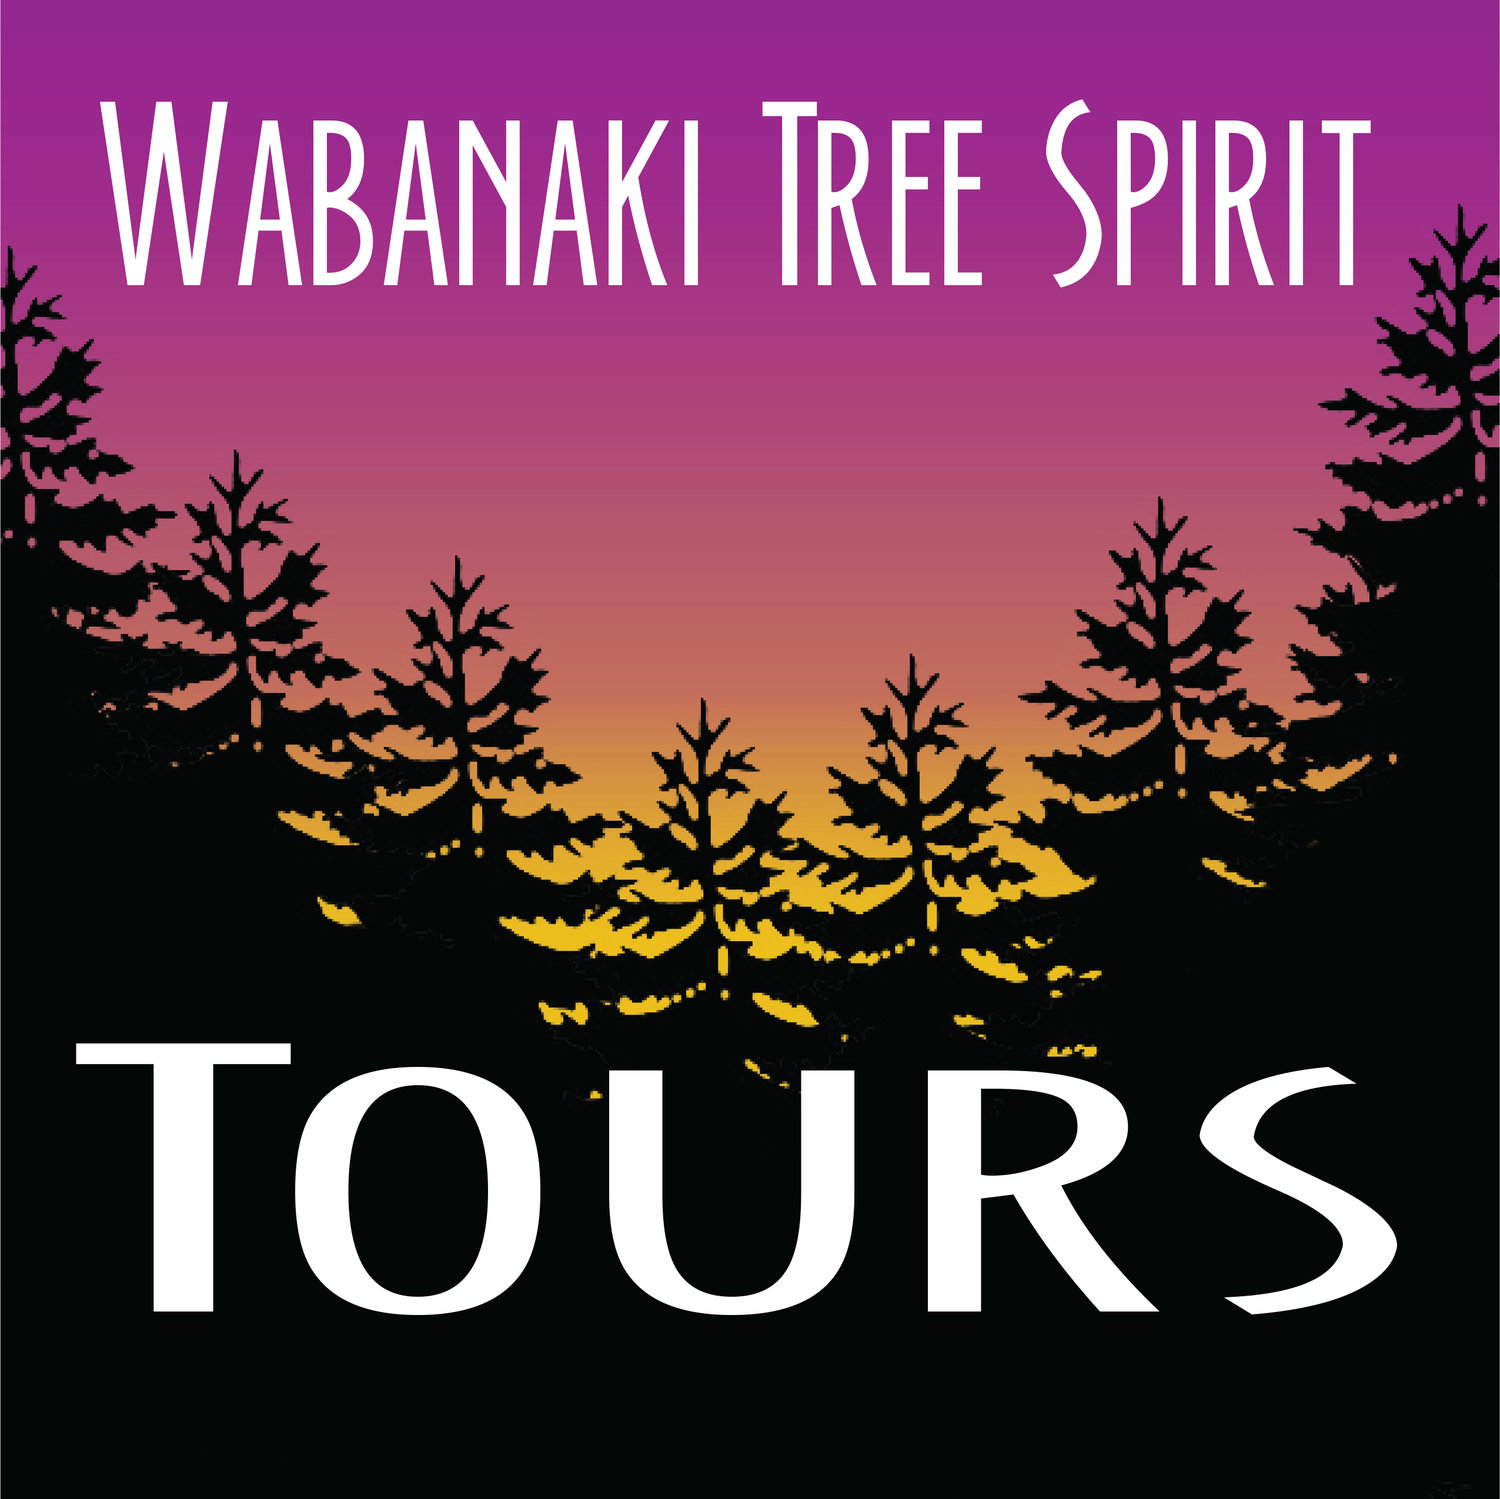 Wabanaki Tree Spirit Tours & Events